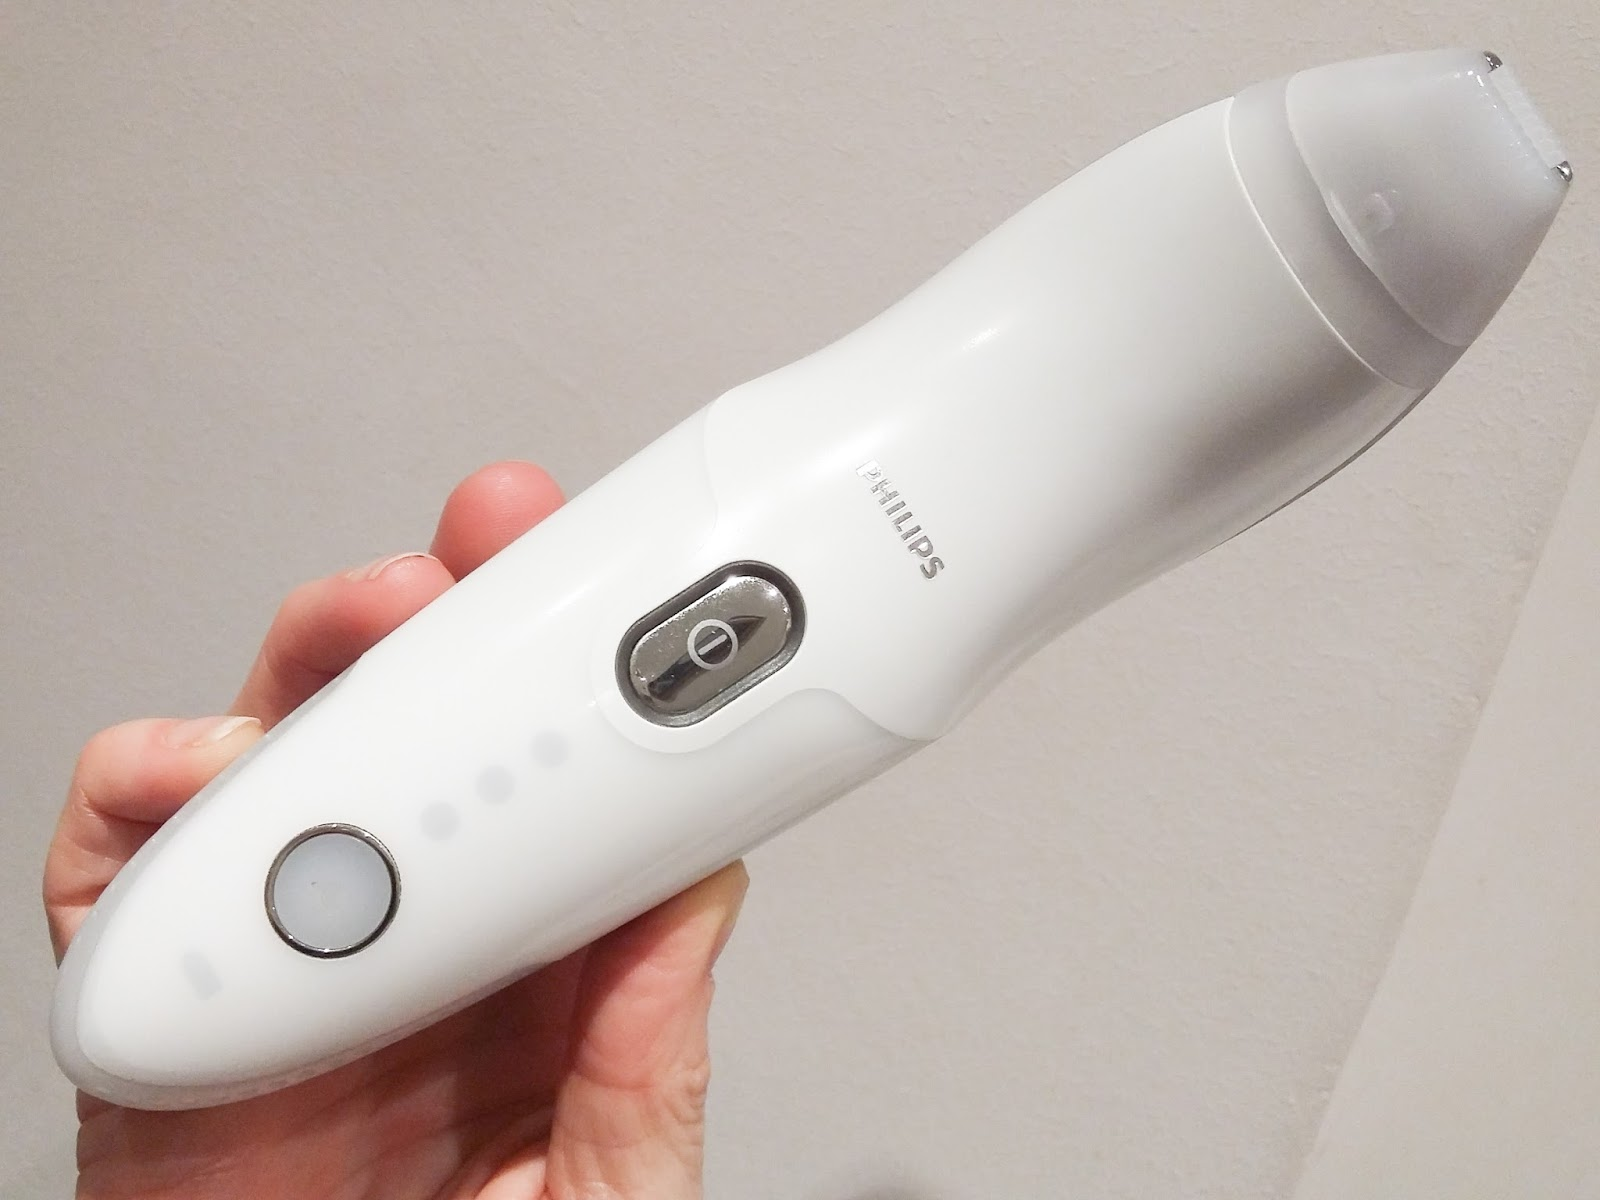 The Philips ReAura – What I've learnt About the At Home Skin